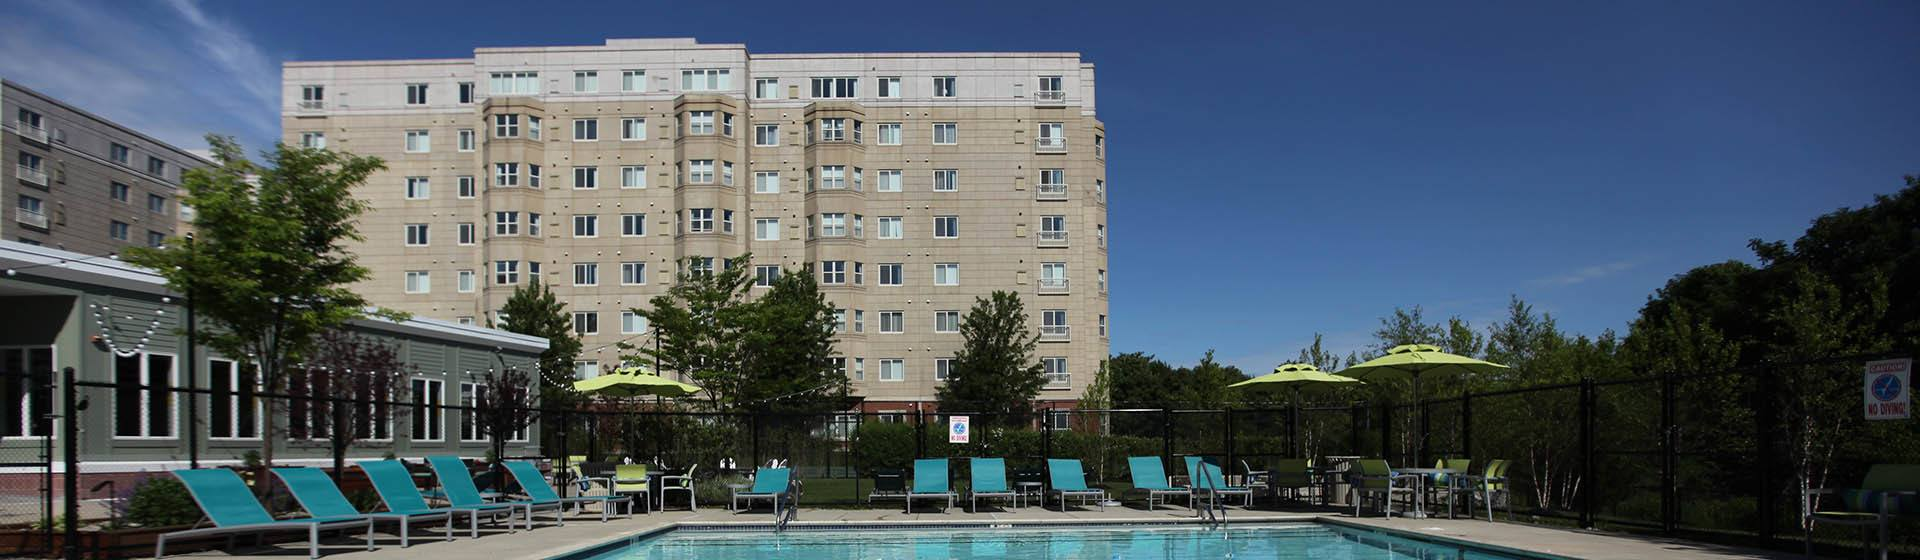 Apartments in Quincy Massachusetts